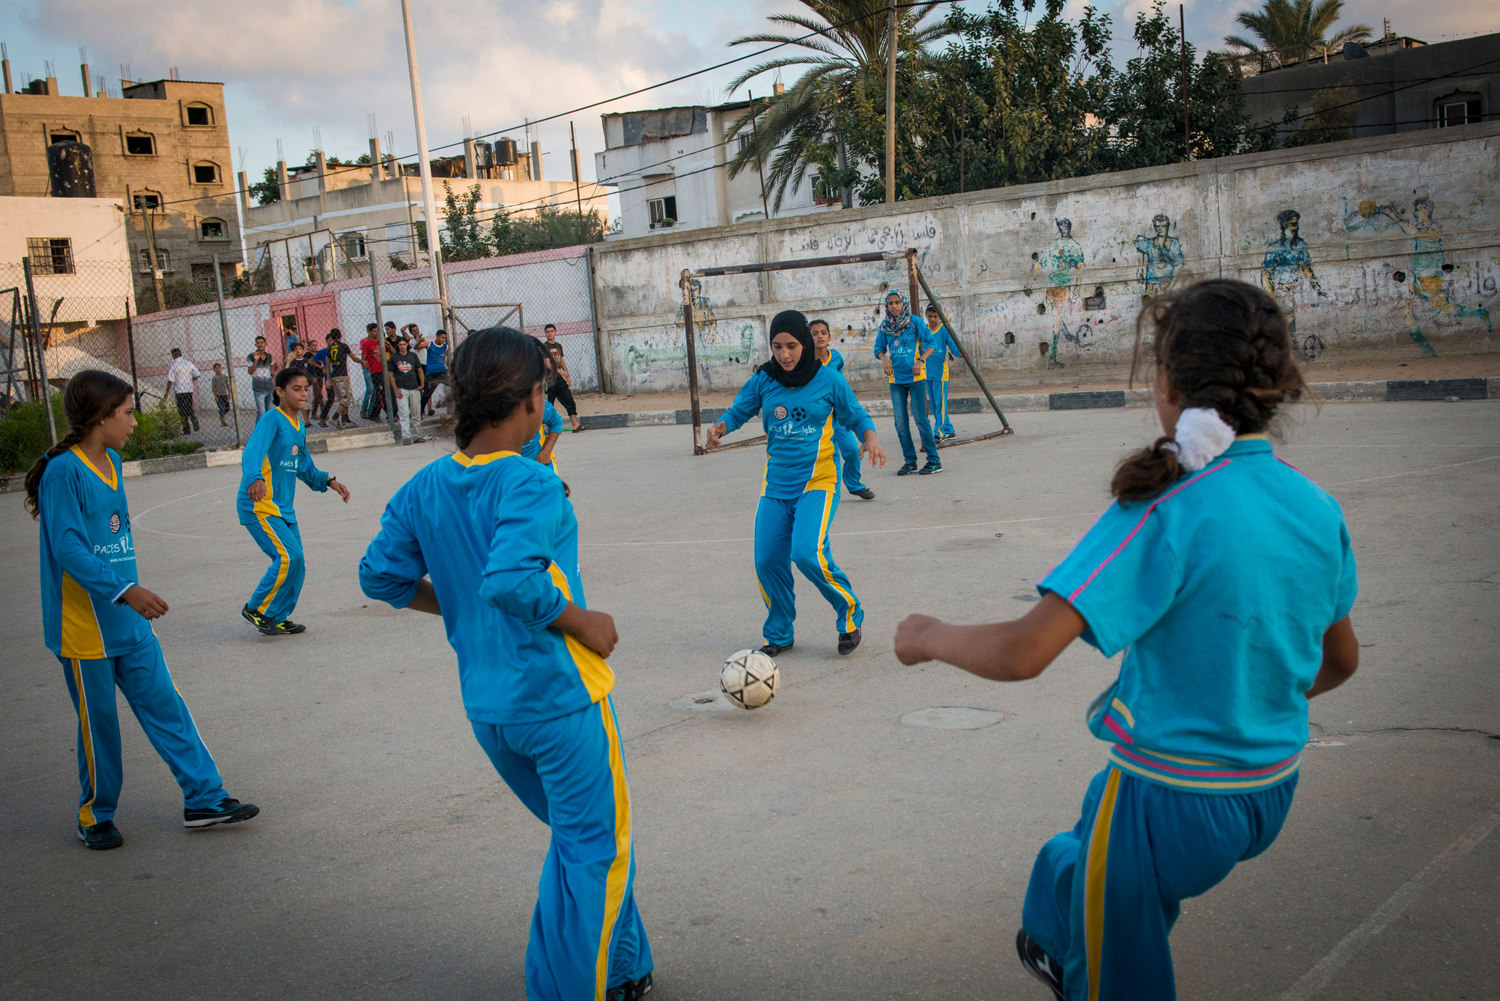 Girls play football in the Northern Gaza town of Beit Lahiyah. Women in Gaza typically do all types of sports till the age of 16, when family pressure forces them to stop as many families seek to find husbands for them.